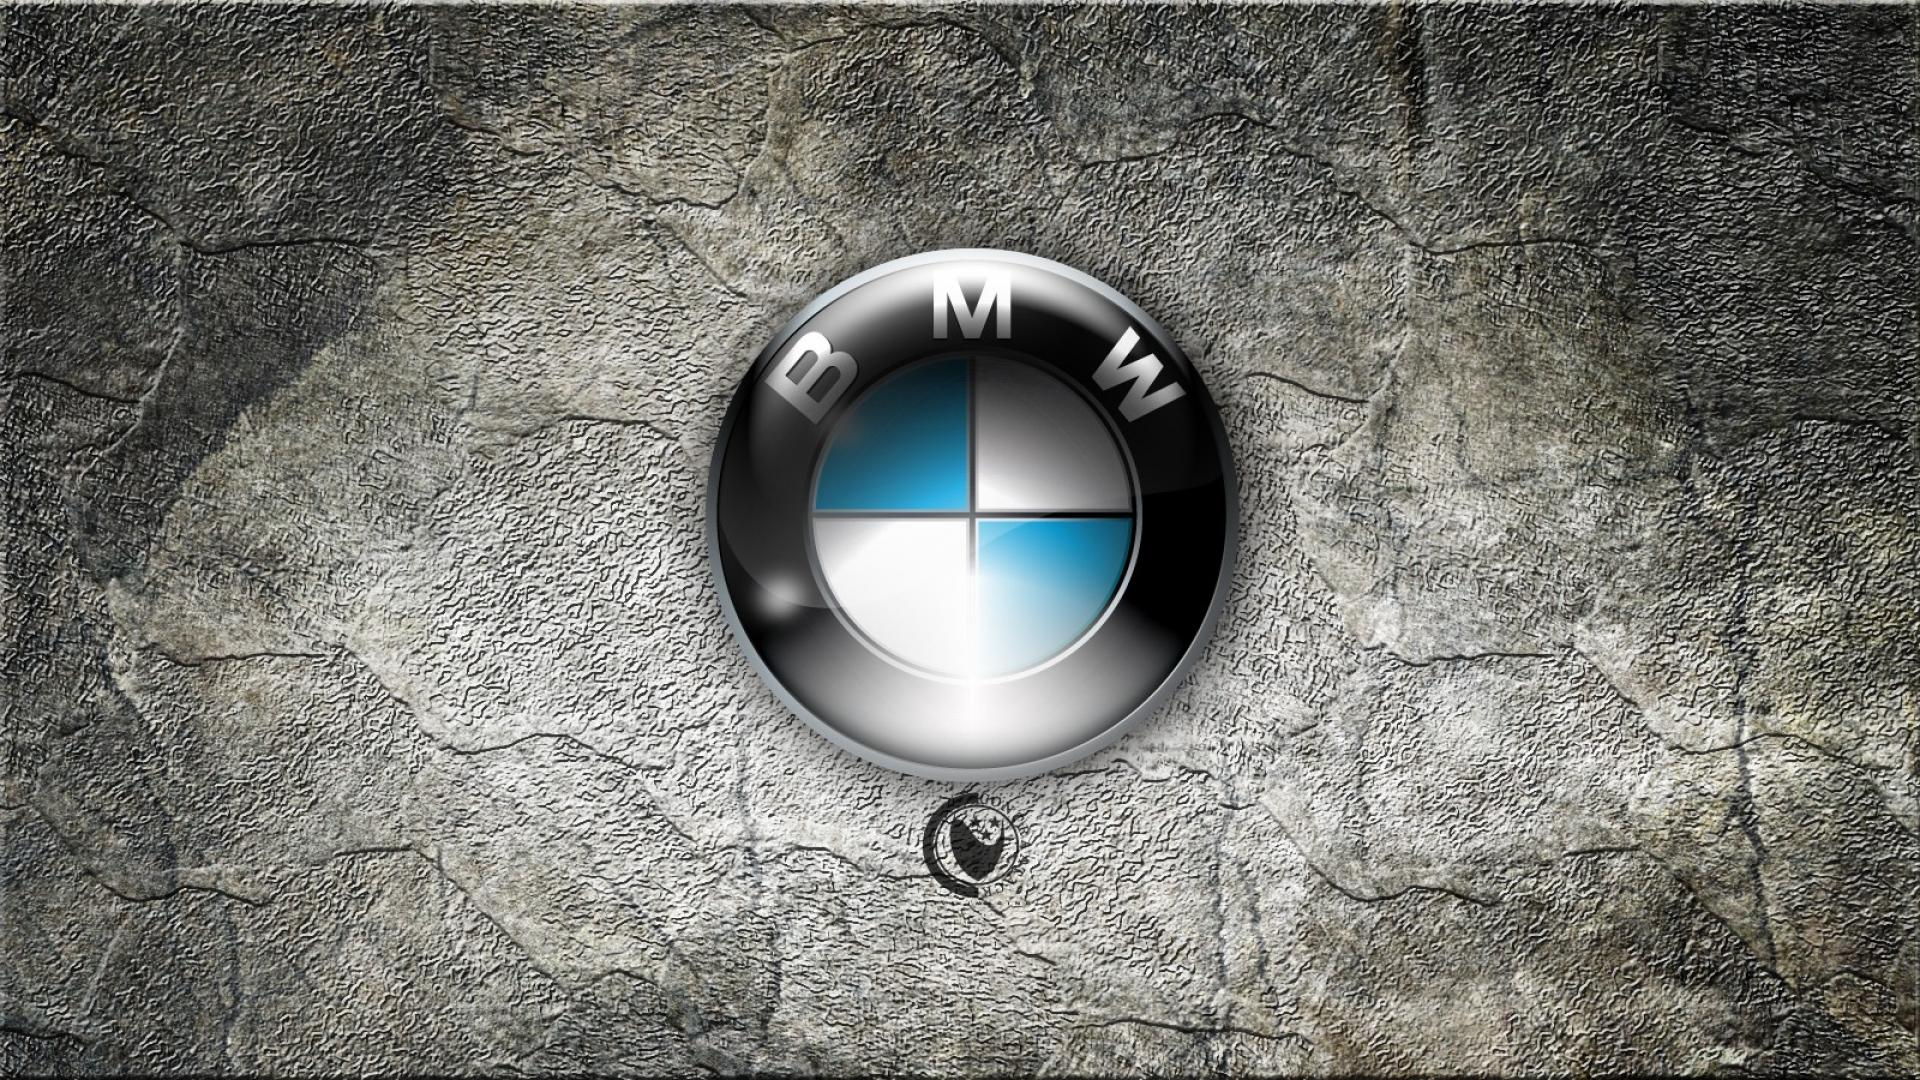 BMW Logo HD Wallpaper - WallpaperSafari Wallpaper Hd